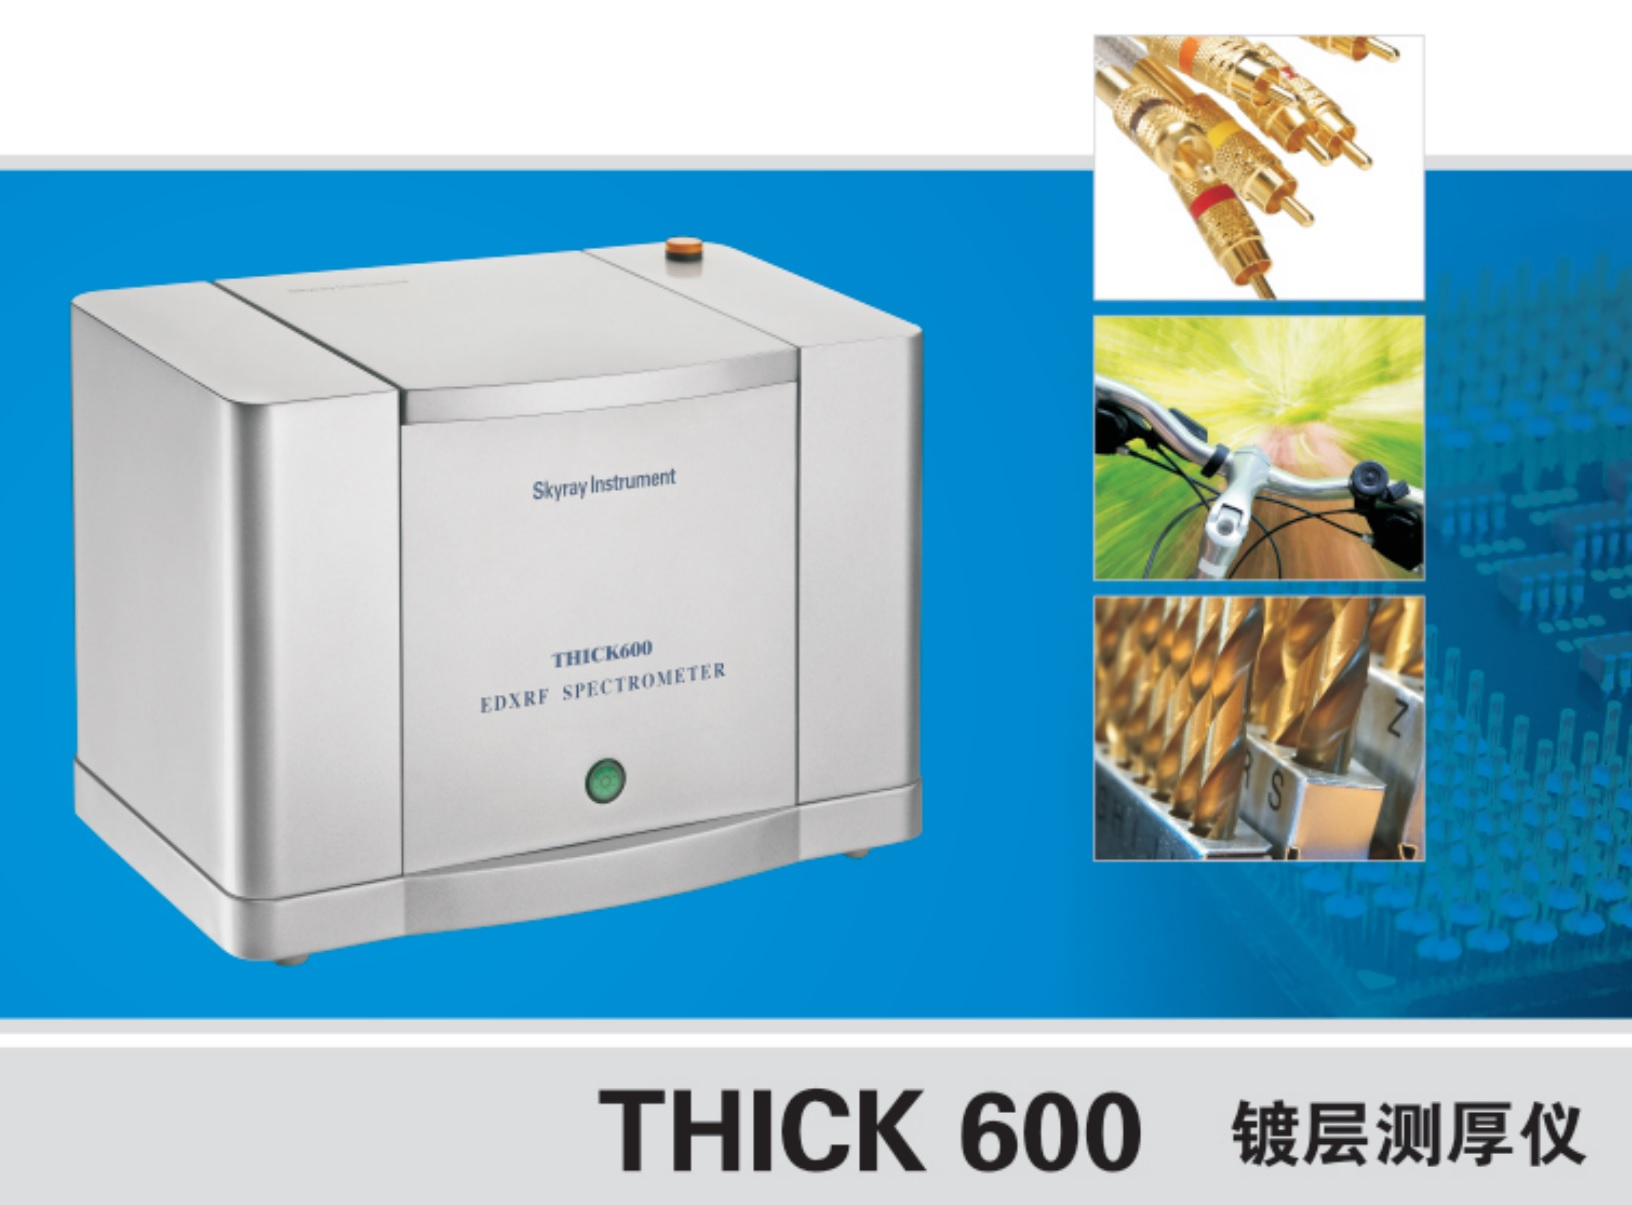 Jiangsu Skyray Instrument Co., Ltd.-THICK600